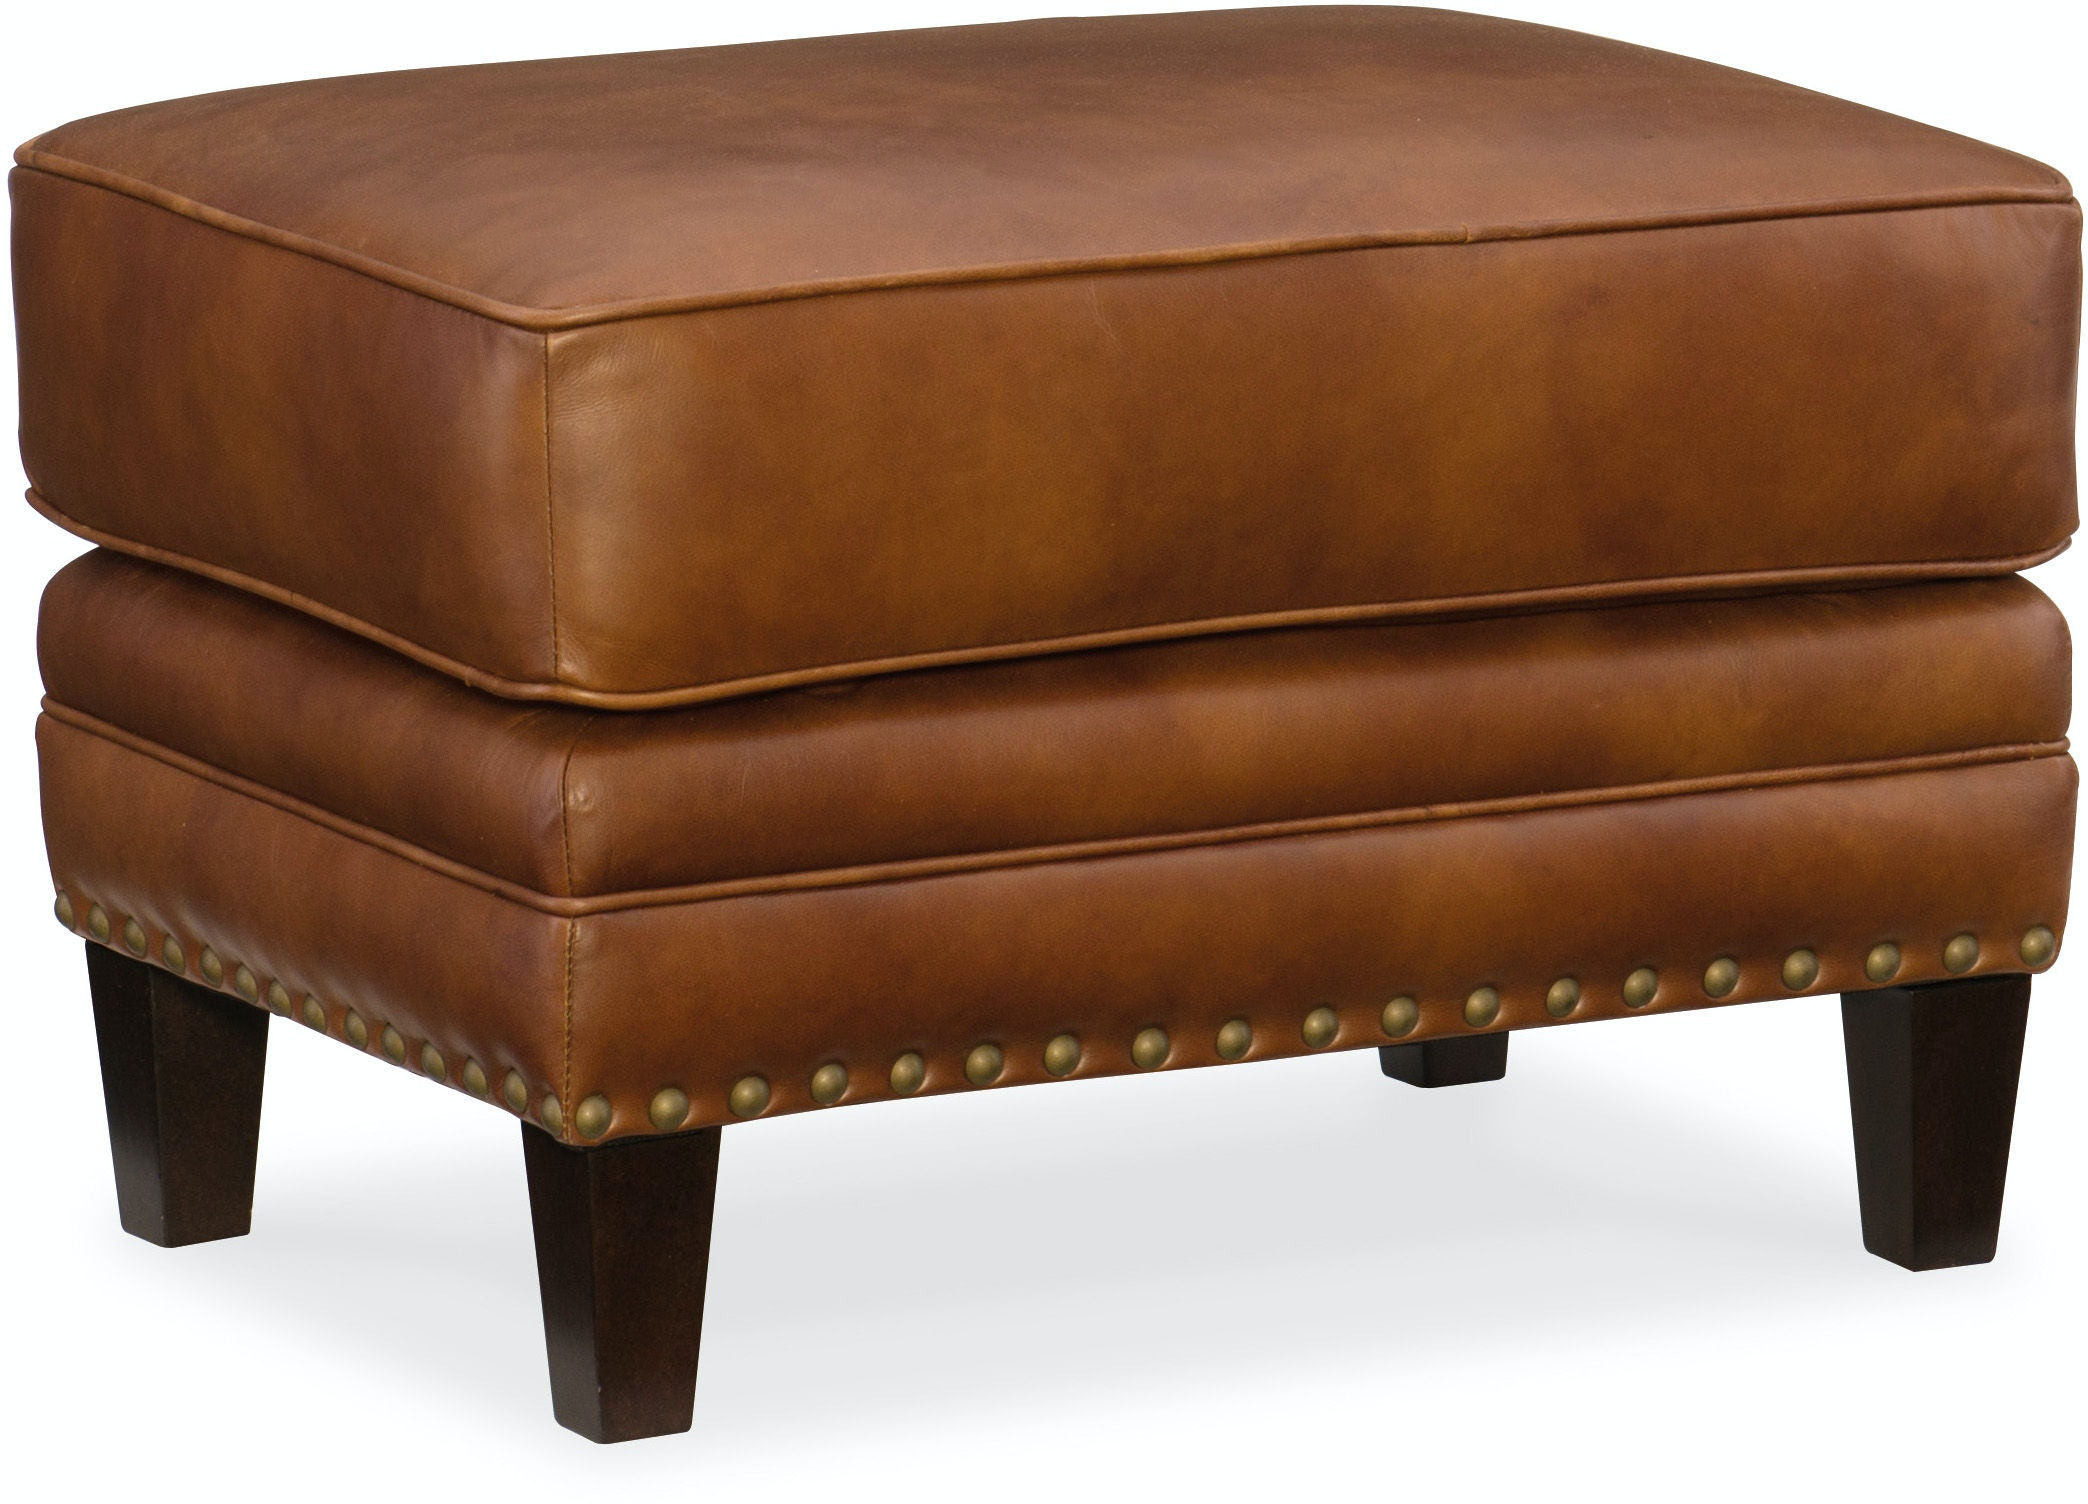 living room ottoman furniture living room exton ottoman ss387 ot 087 10141